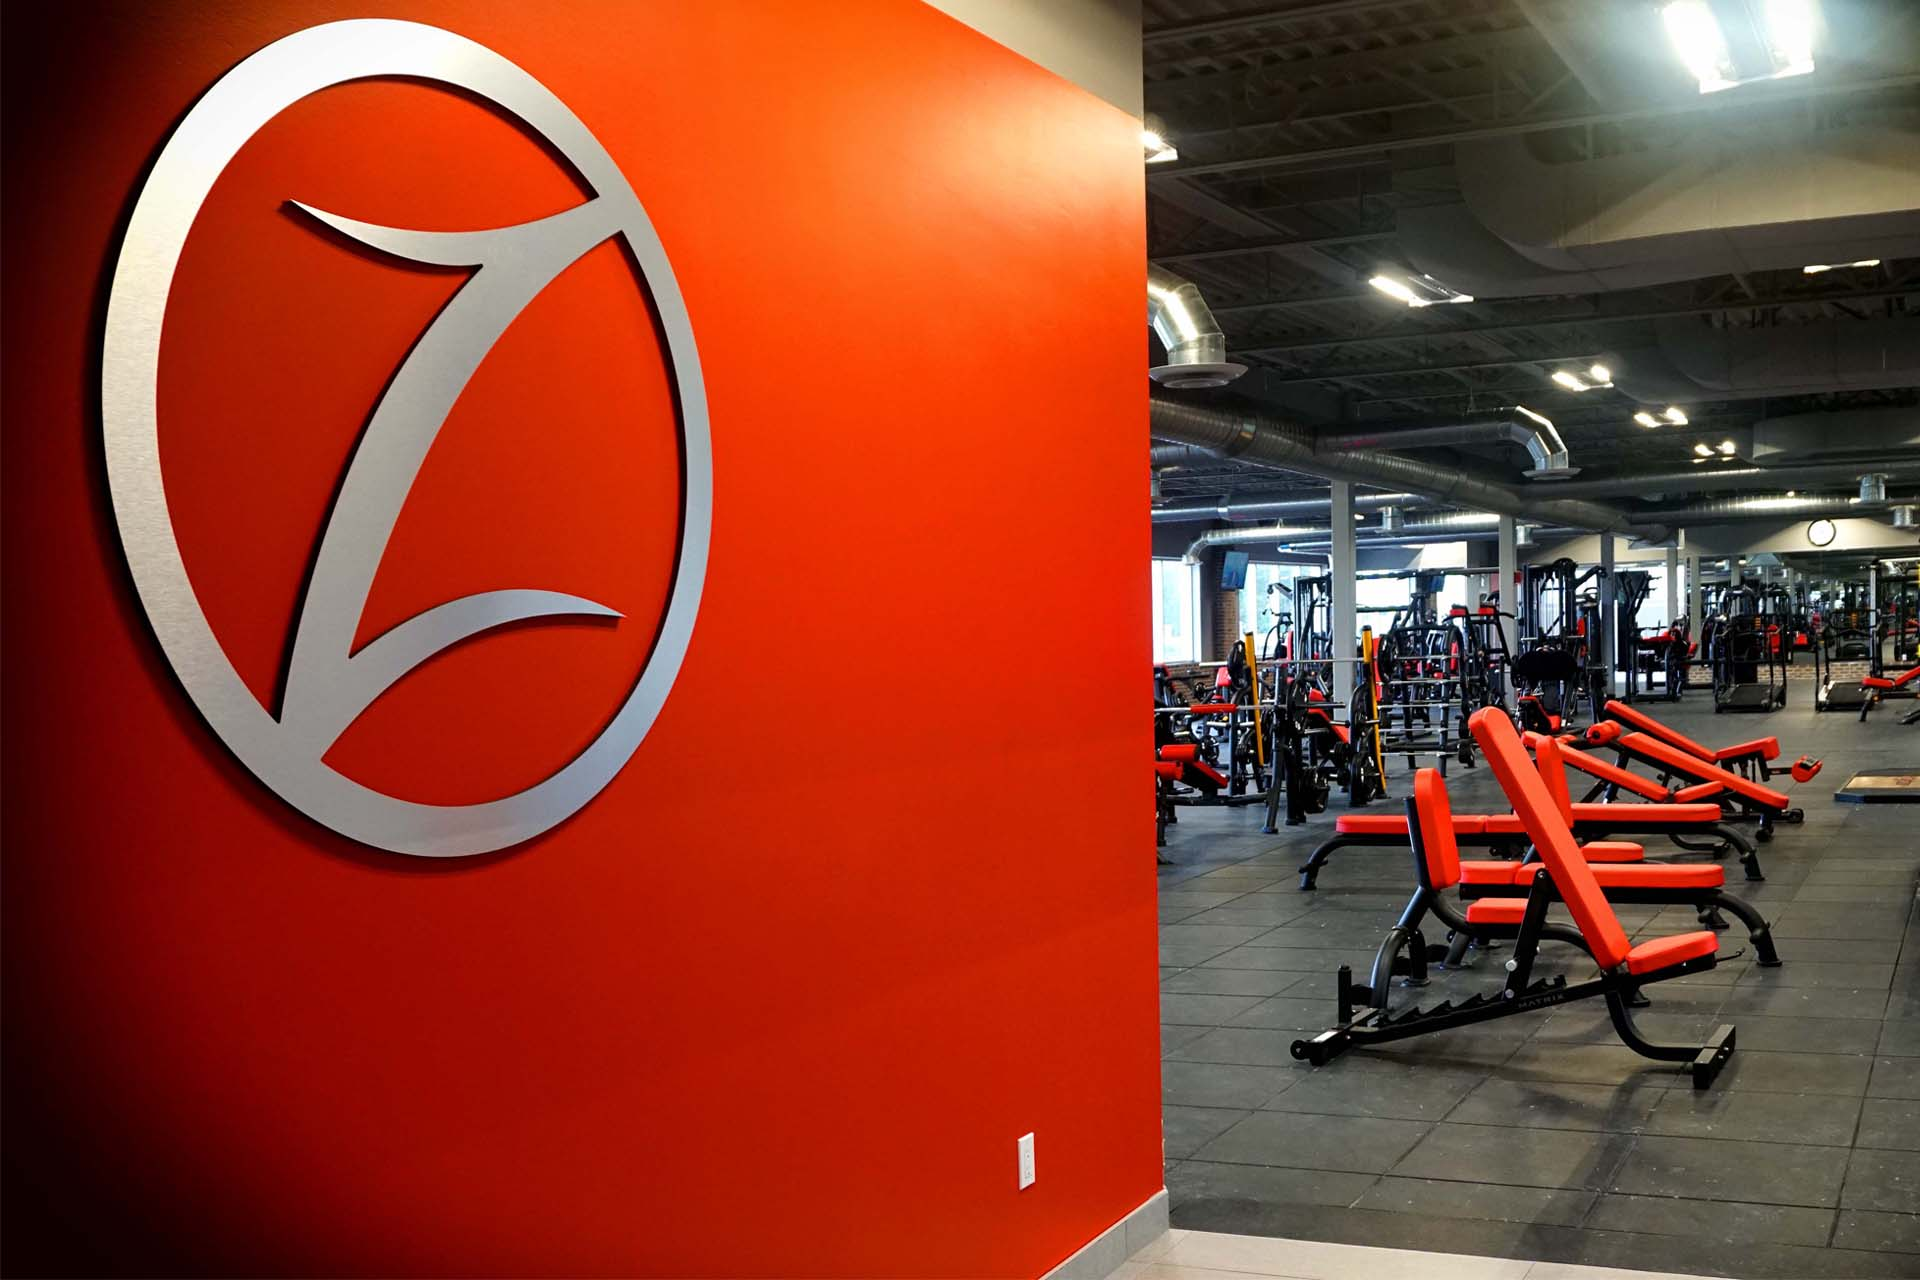 logo of fuzon fitness center along with workout area